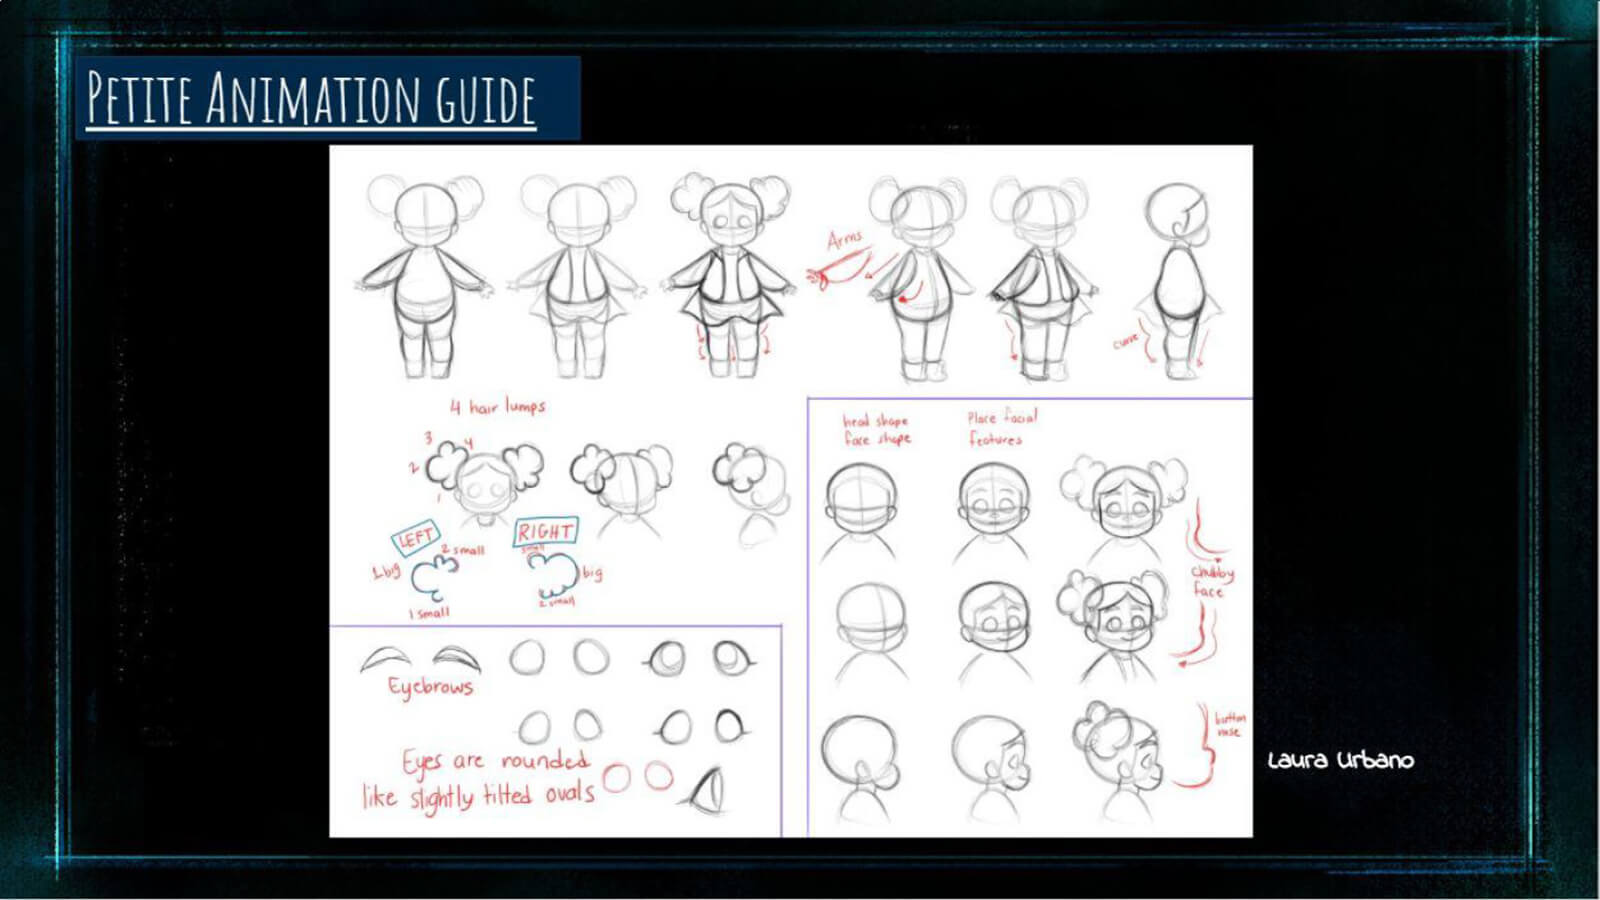 An animation guide for the film's character Petite, showing proper proportions, as well as hair, face, and eye shapes.